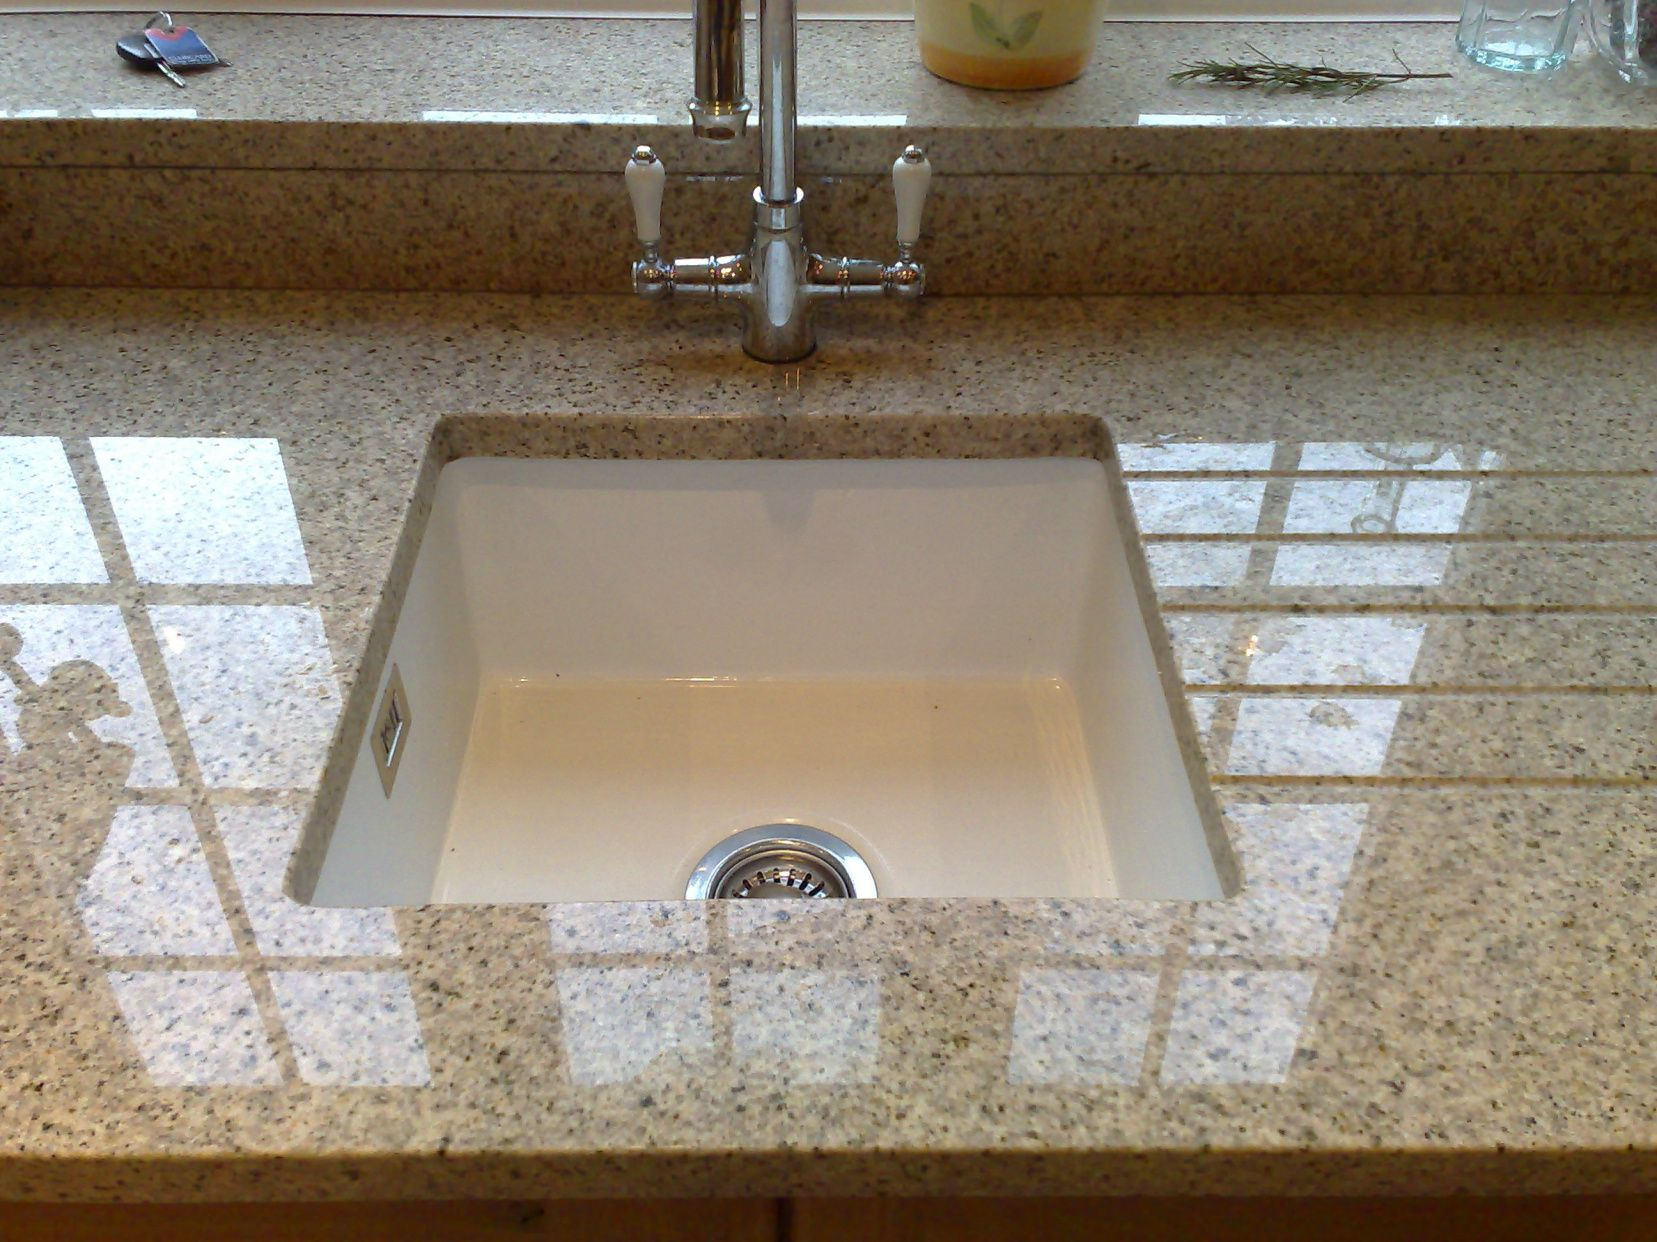 20 Granite Countertop With Undermount Sink Small Kitchen Island Ideas With Seating Check More At Stone Sink Kitchen Kitchen Decor Modern Large Kitchen Sinks